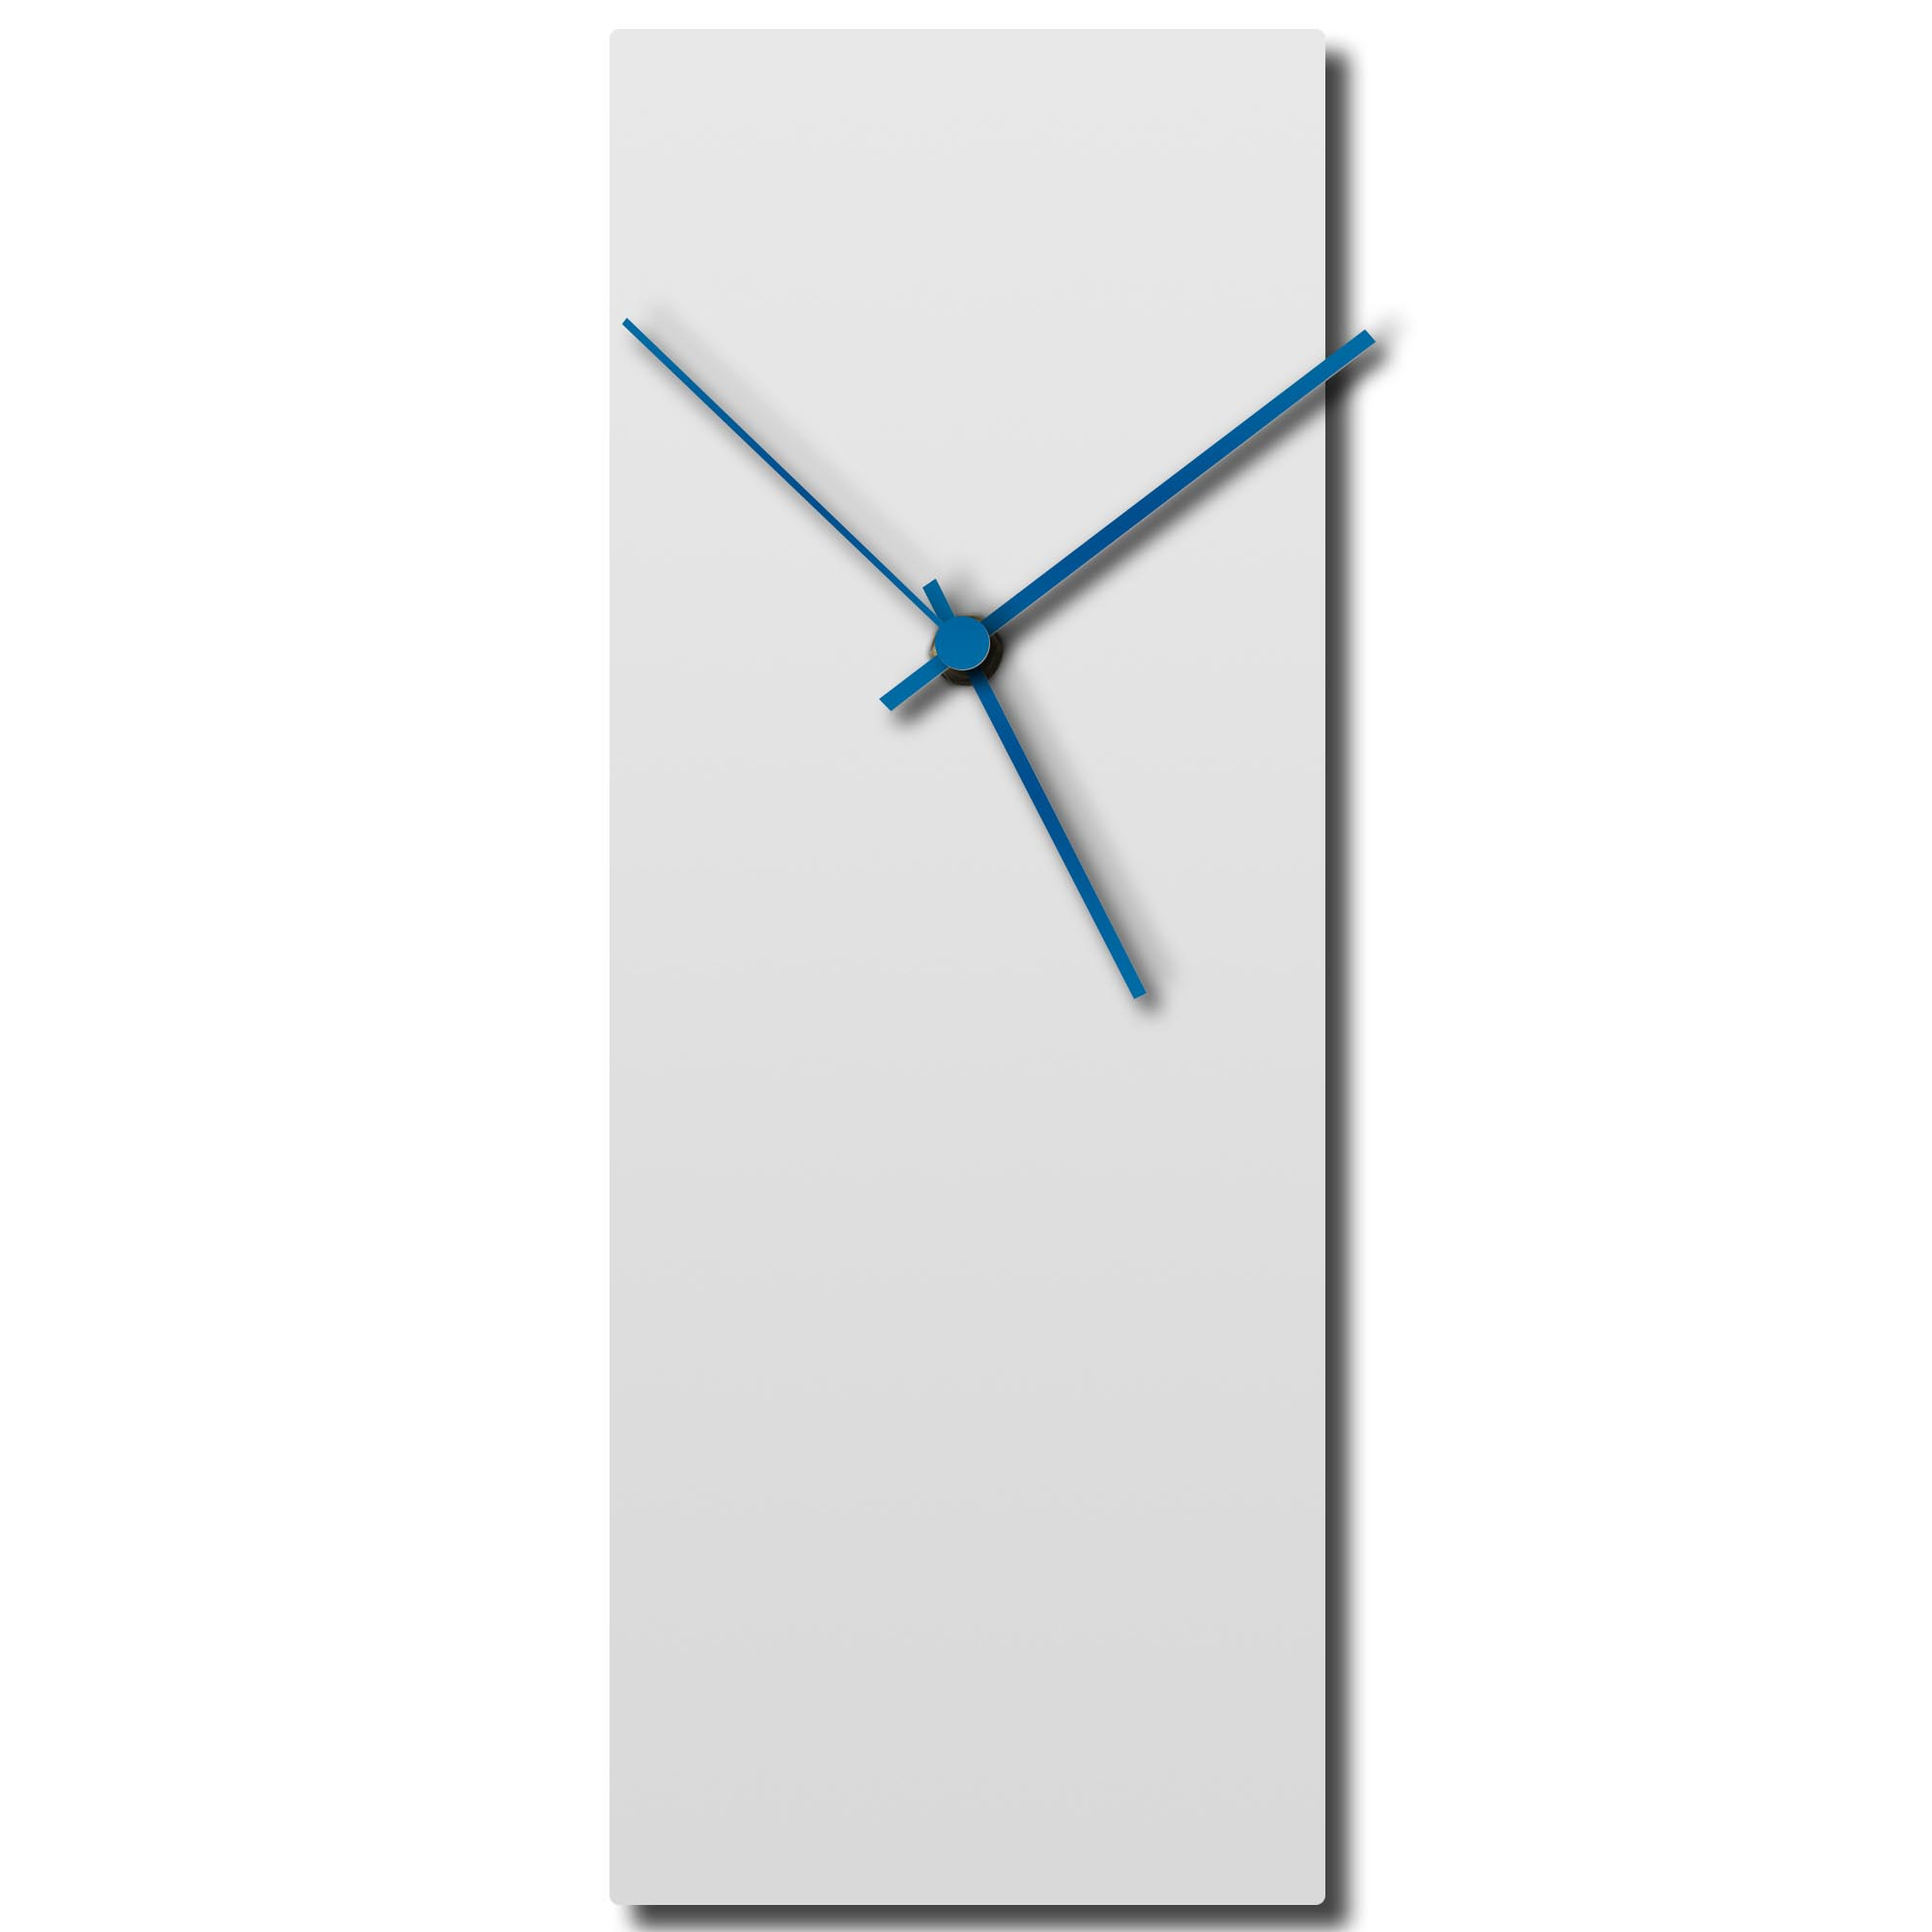 Whiteout Blue Clock 8.25x22in. Aluminum Polymetal